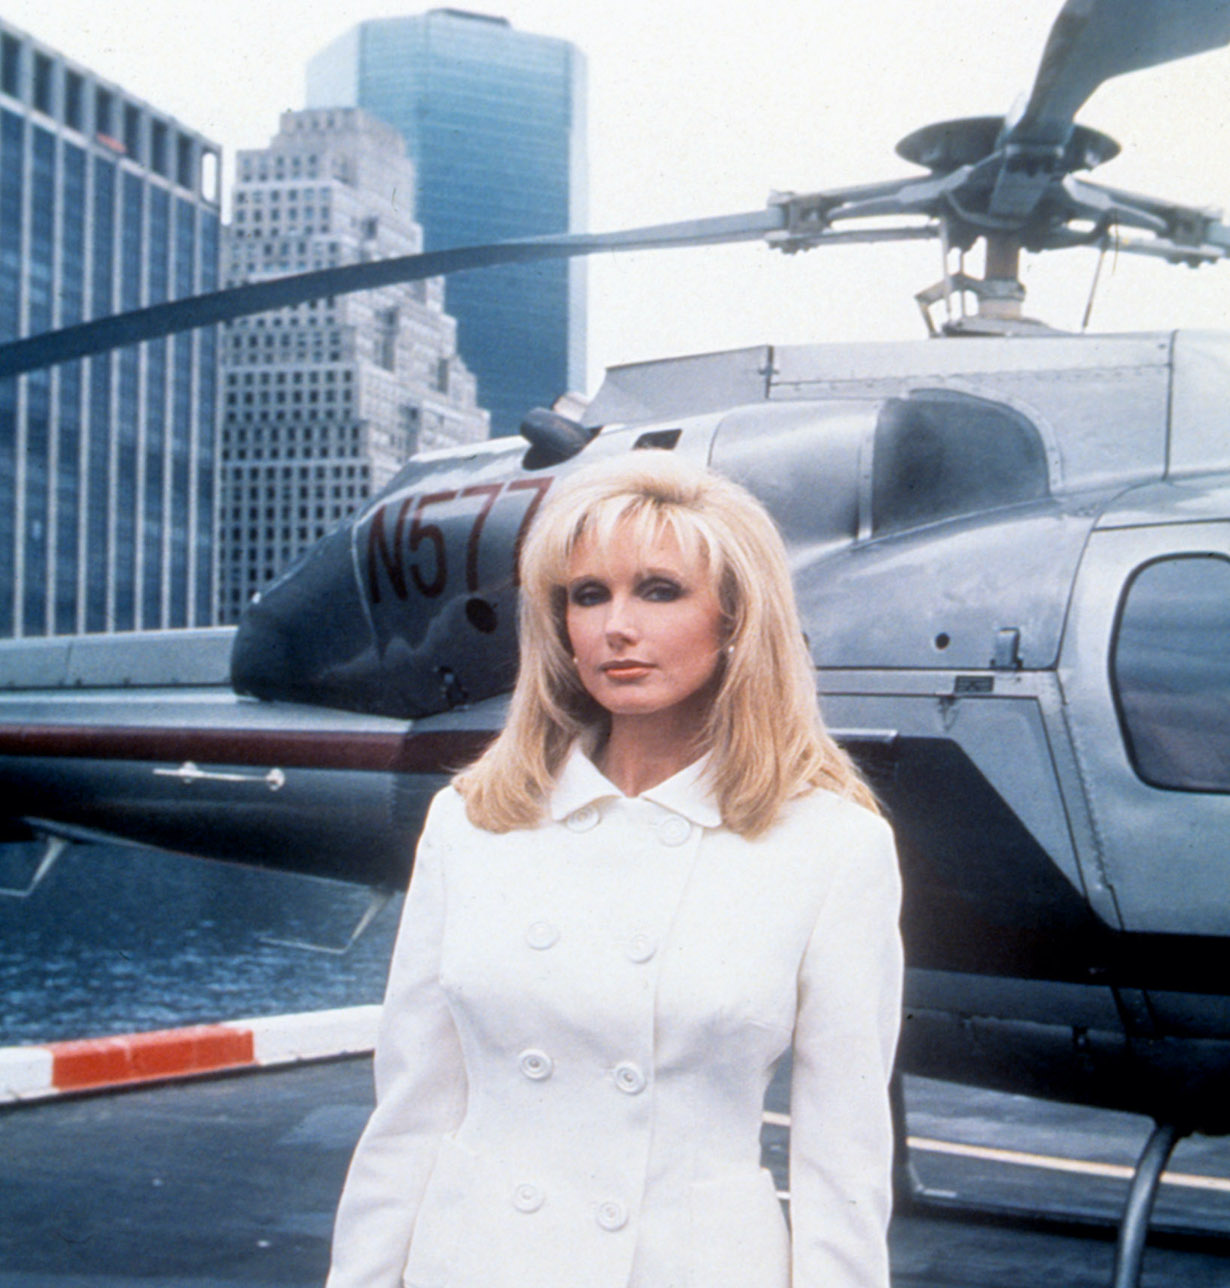 THE CITY, Morgan Fairchild, 1995-97. © Dramatic Creations / Courtesy: Everett Collection